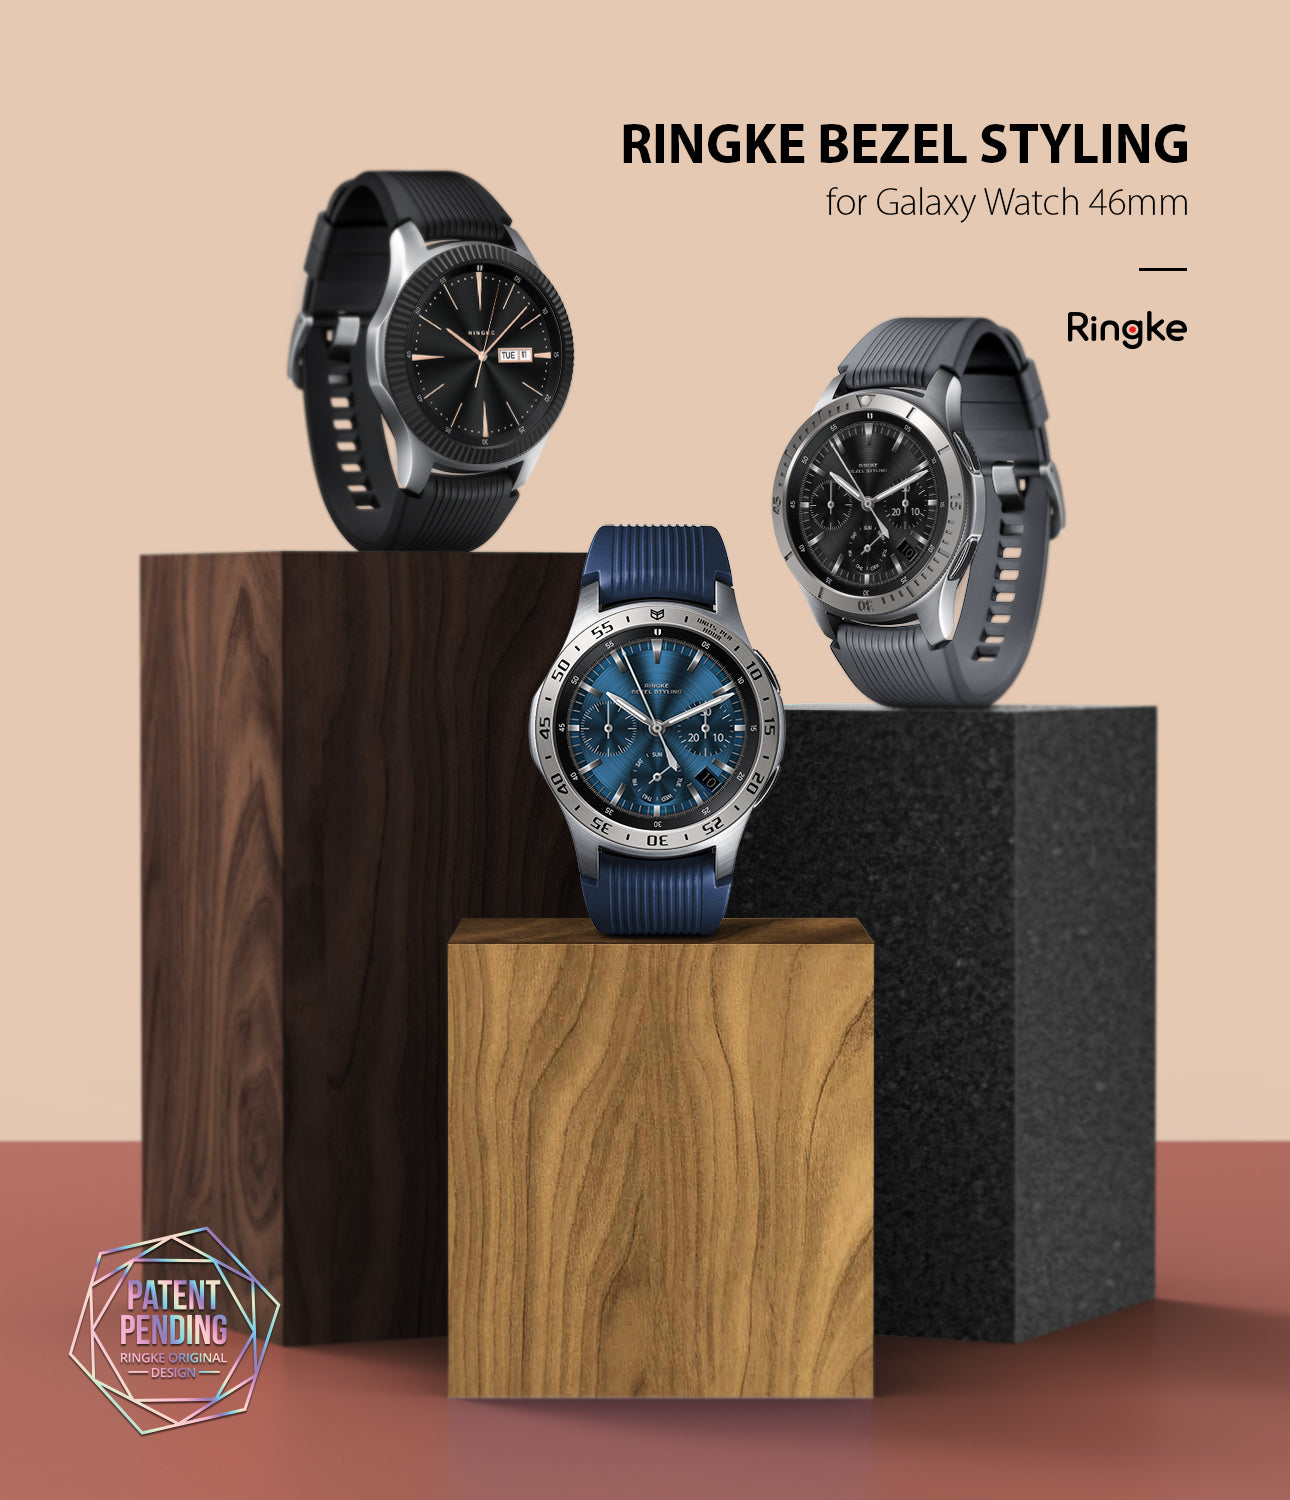 ringke bezel styling stainless steel designed for galaxy watch 46mm, galaxy watch gear s3 frontier and cleassic